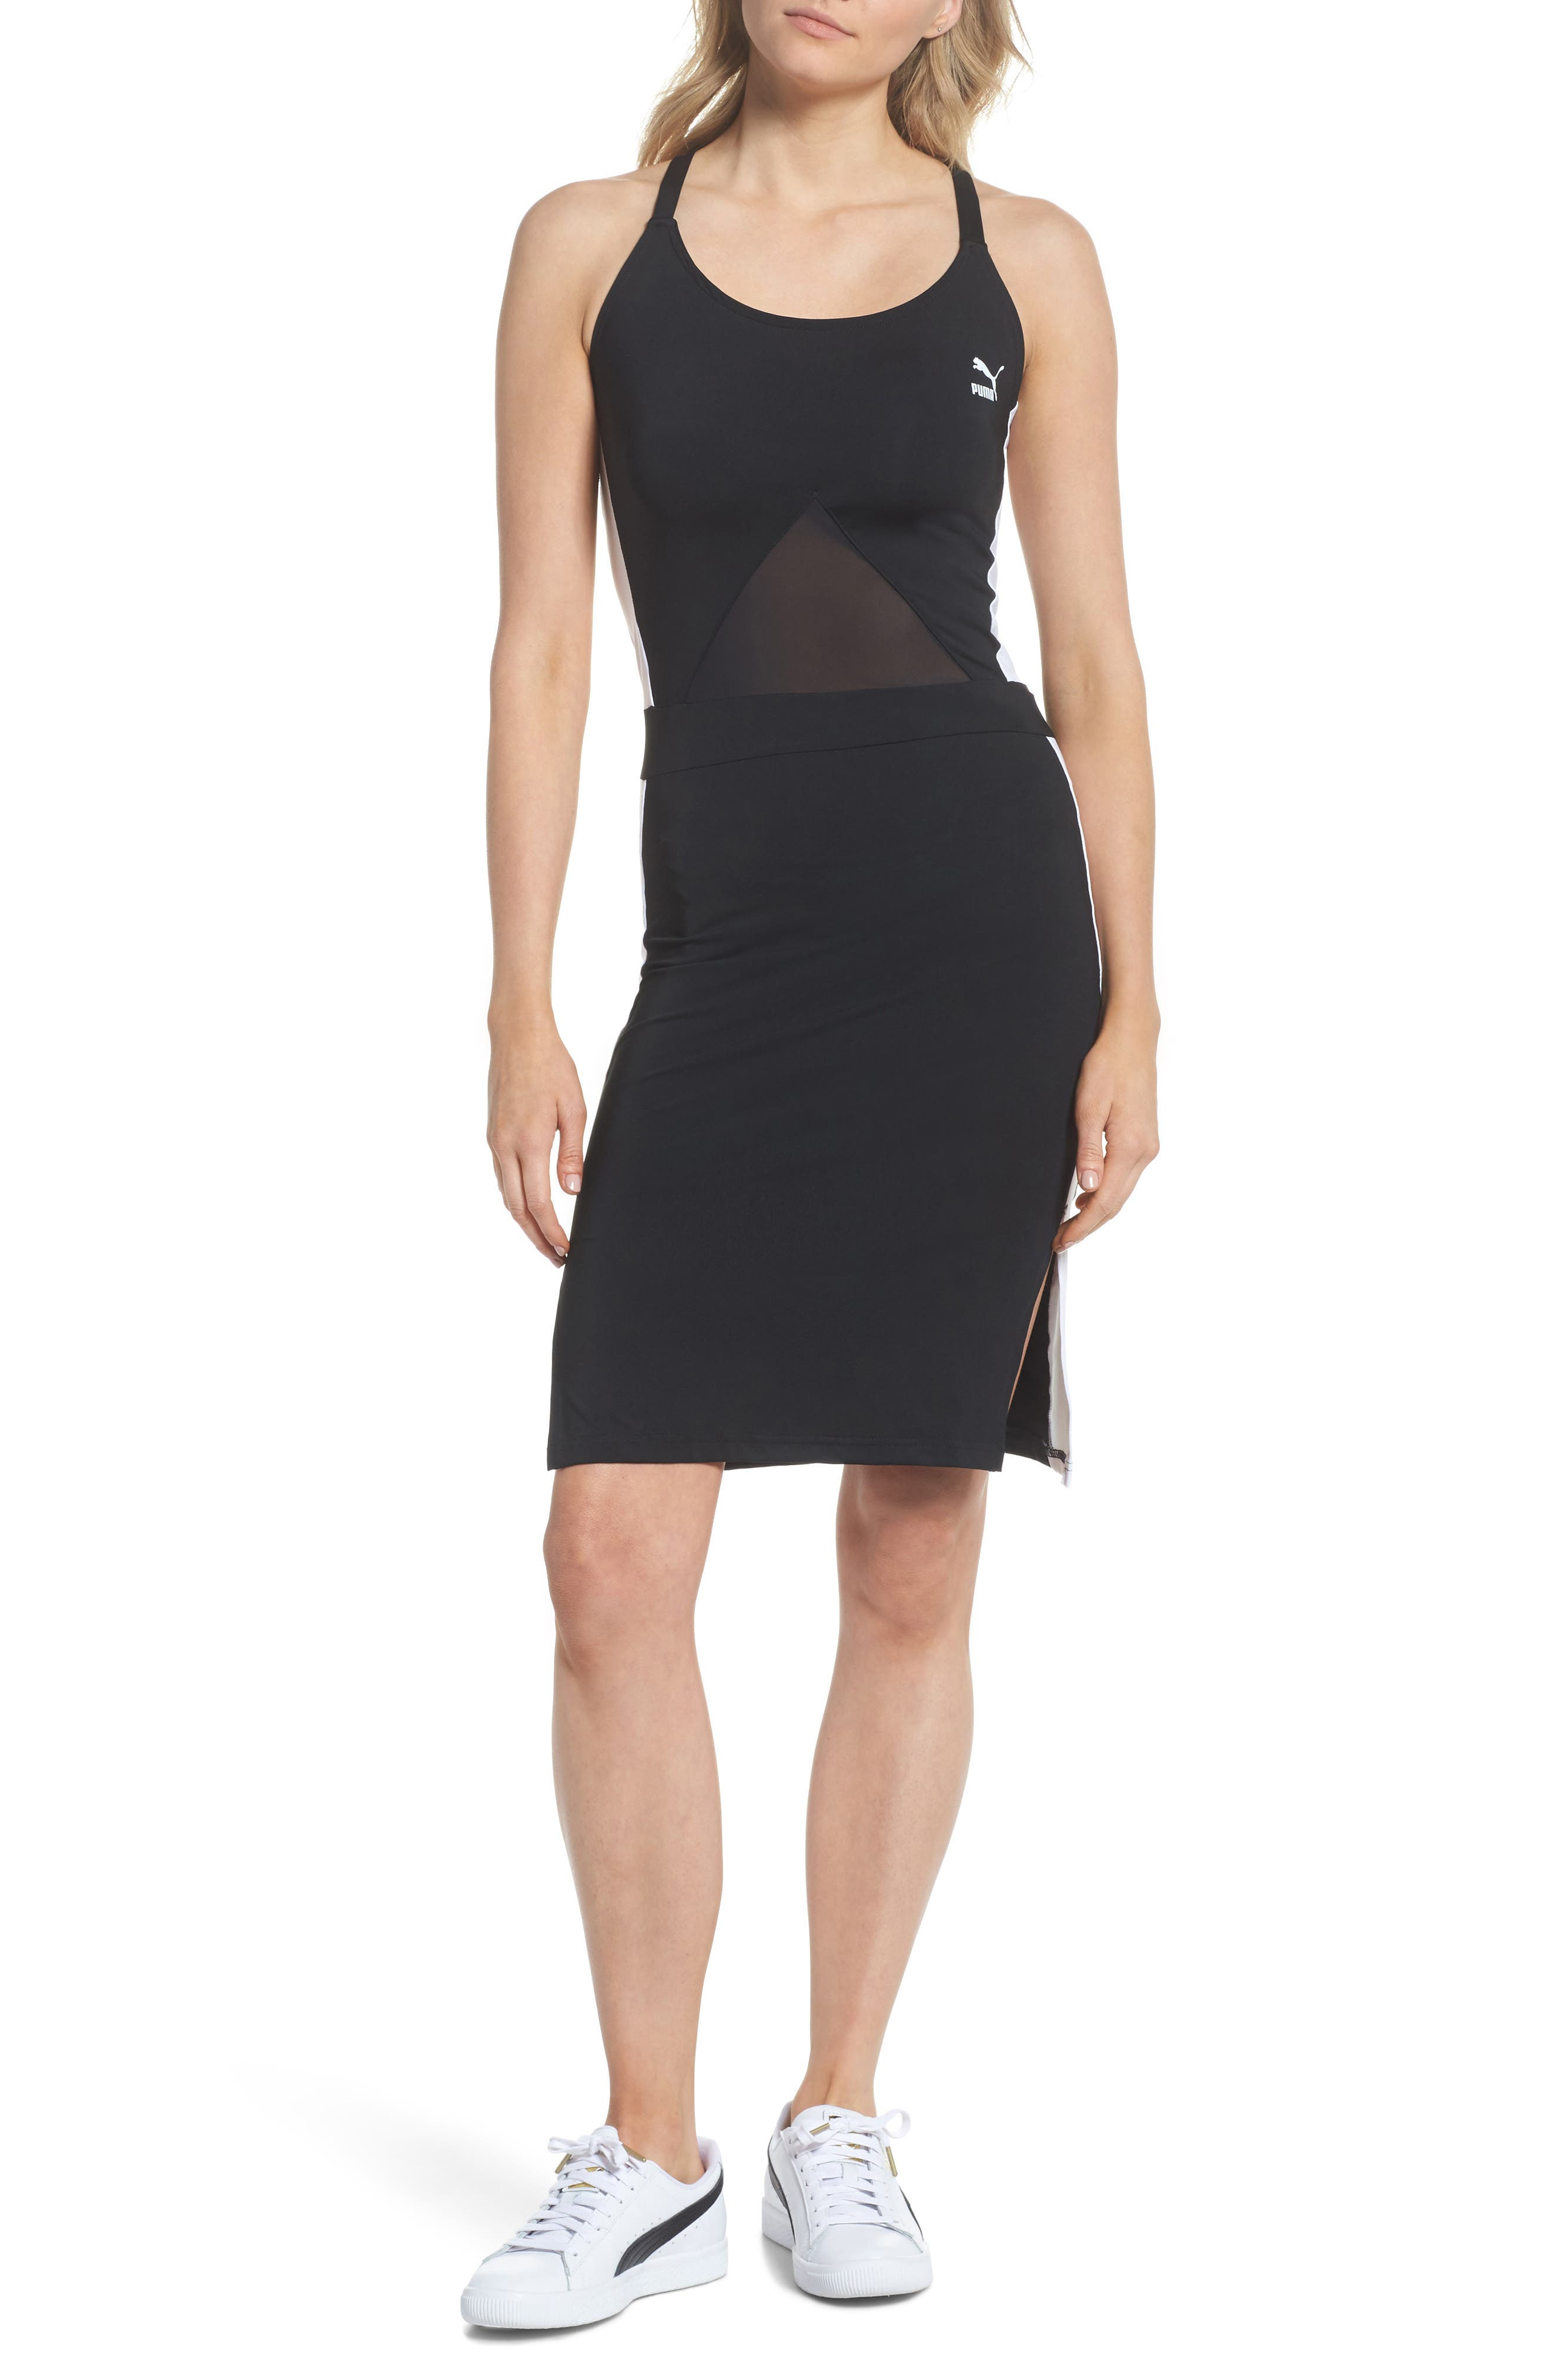 Archive T7 Dress,                             Main thumbnail 1, color,                             Puma Black